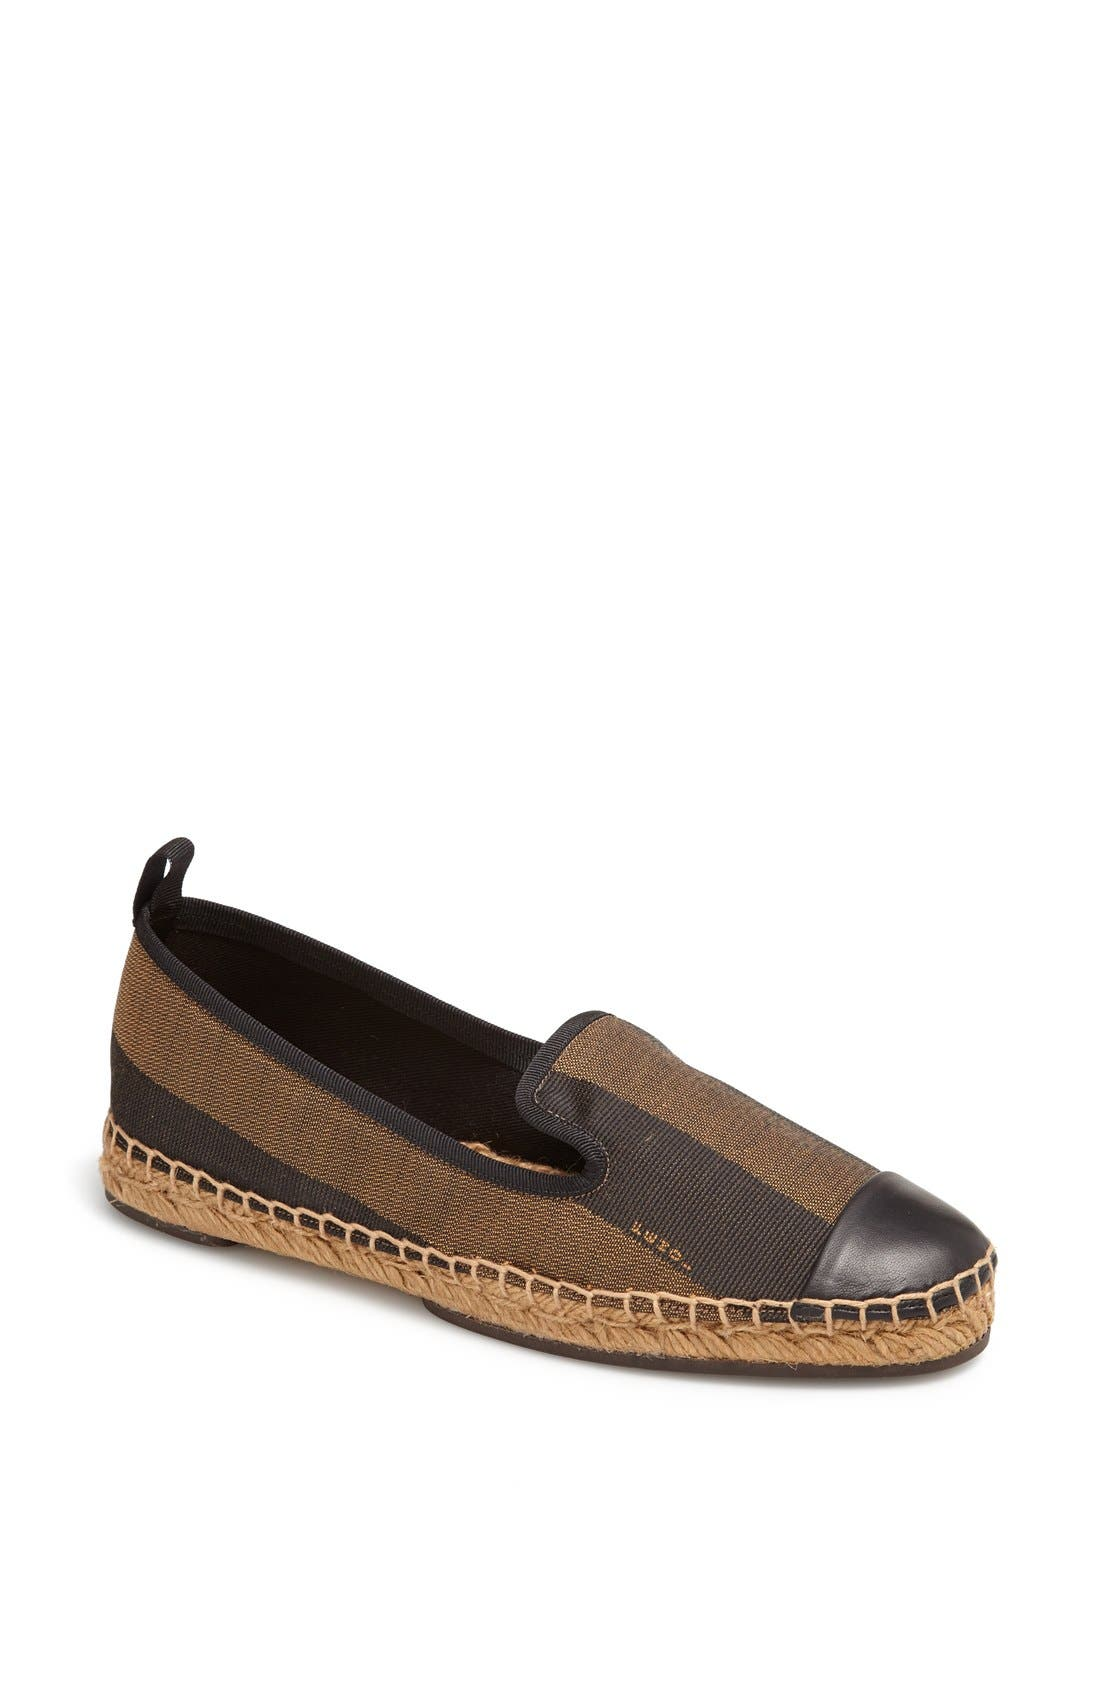 Alternate Image 1 Selected - Fendi 'Junia' Espadrille Flat (Women)